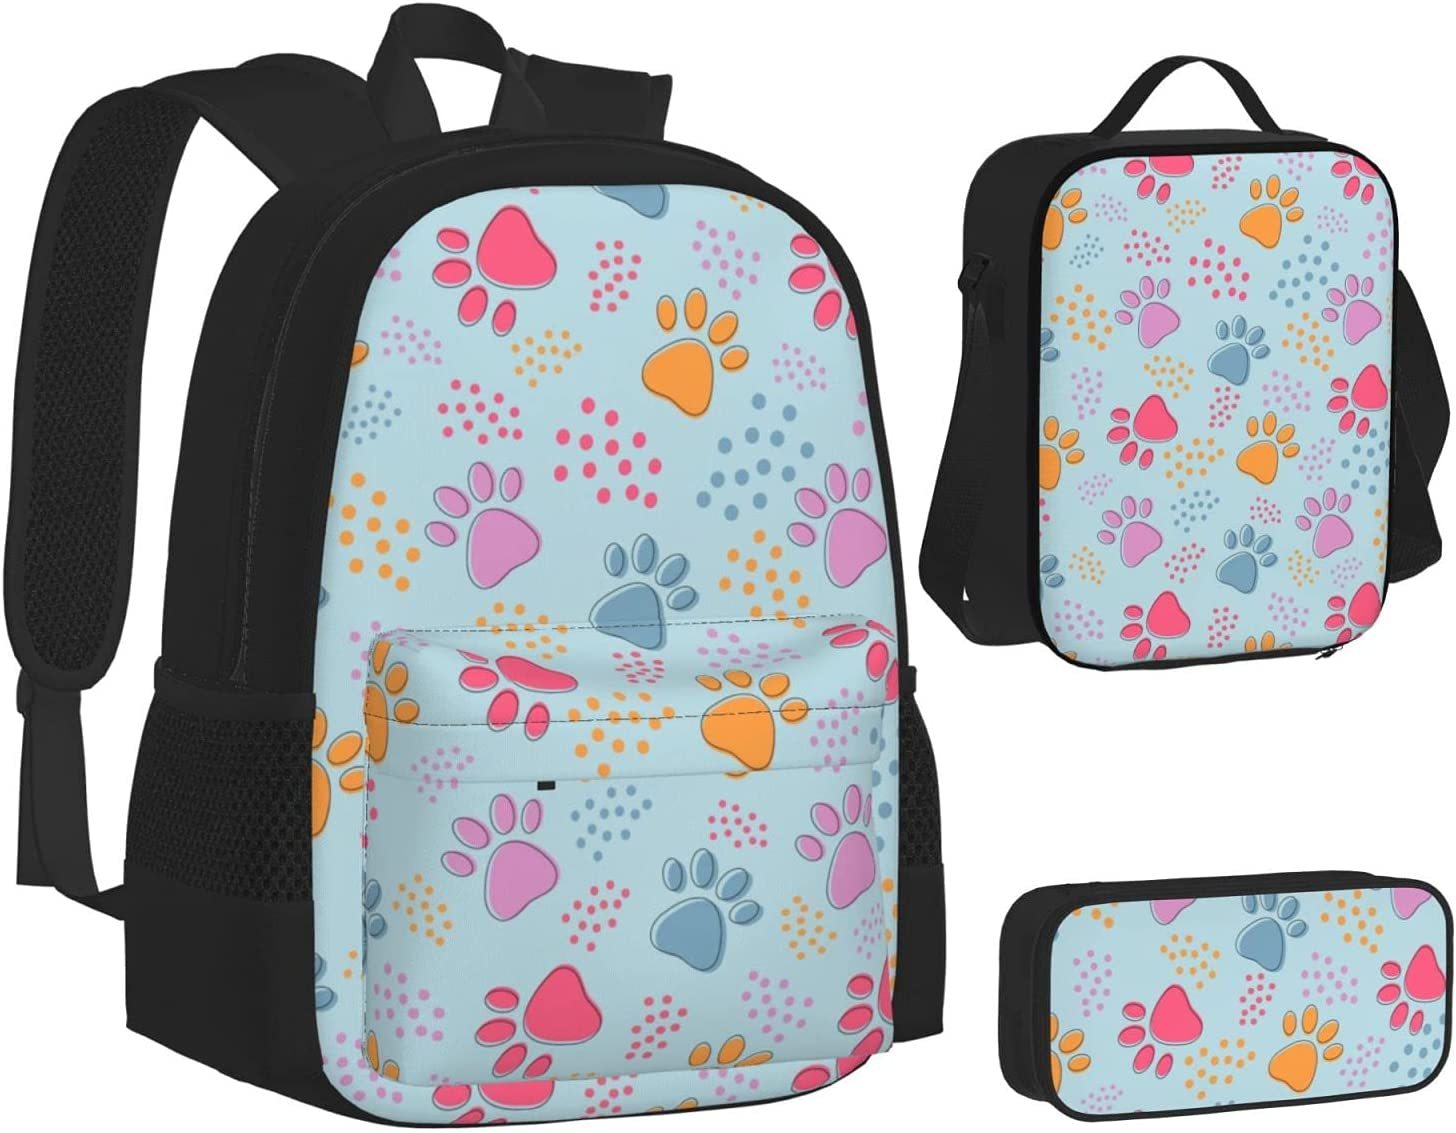 Inexpensive Lunch Selling Bag for Boys Girls,Colorful Backpack B Paw Dog and